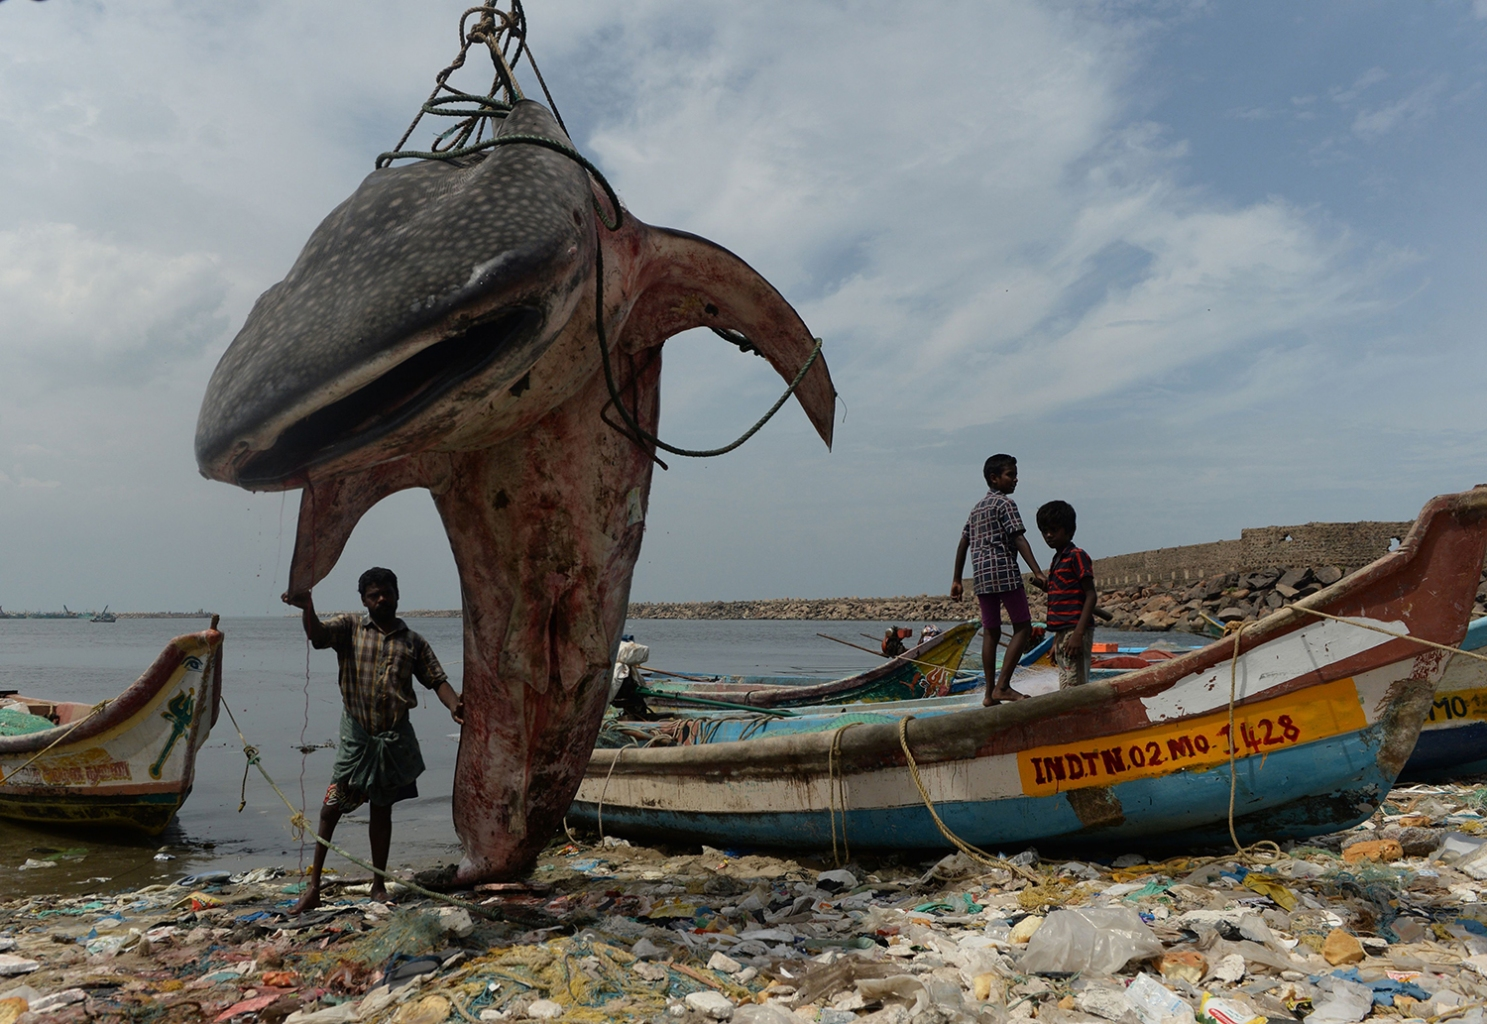 An Indian man stands next to a whale shark that washed ashore and was lifted out by a crane for inspection in the Kasimedu fishing harbour in Chennai on July 27. ARUN SANKAR/AFP/Getty Images